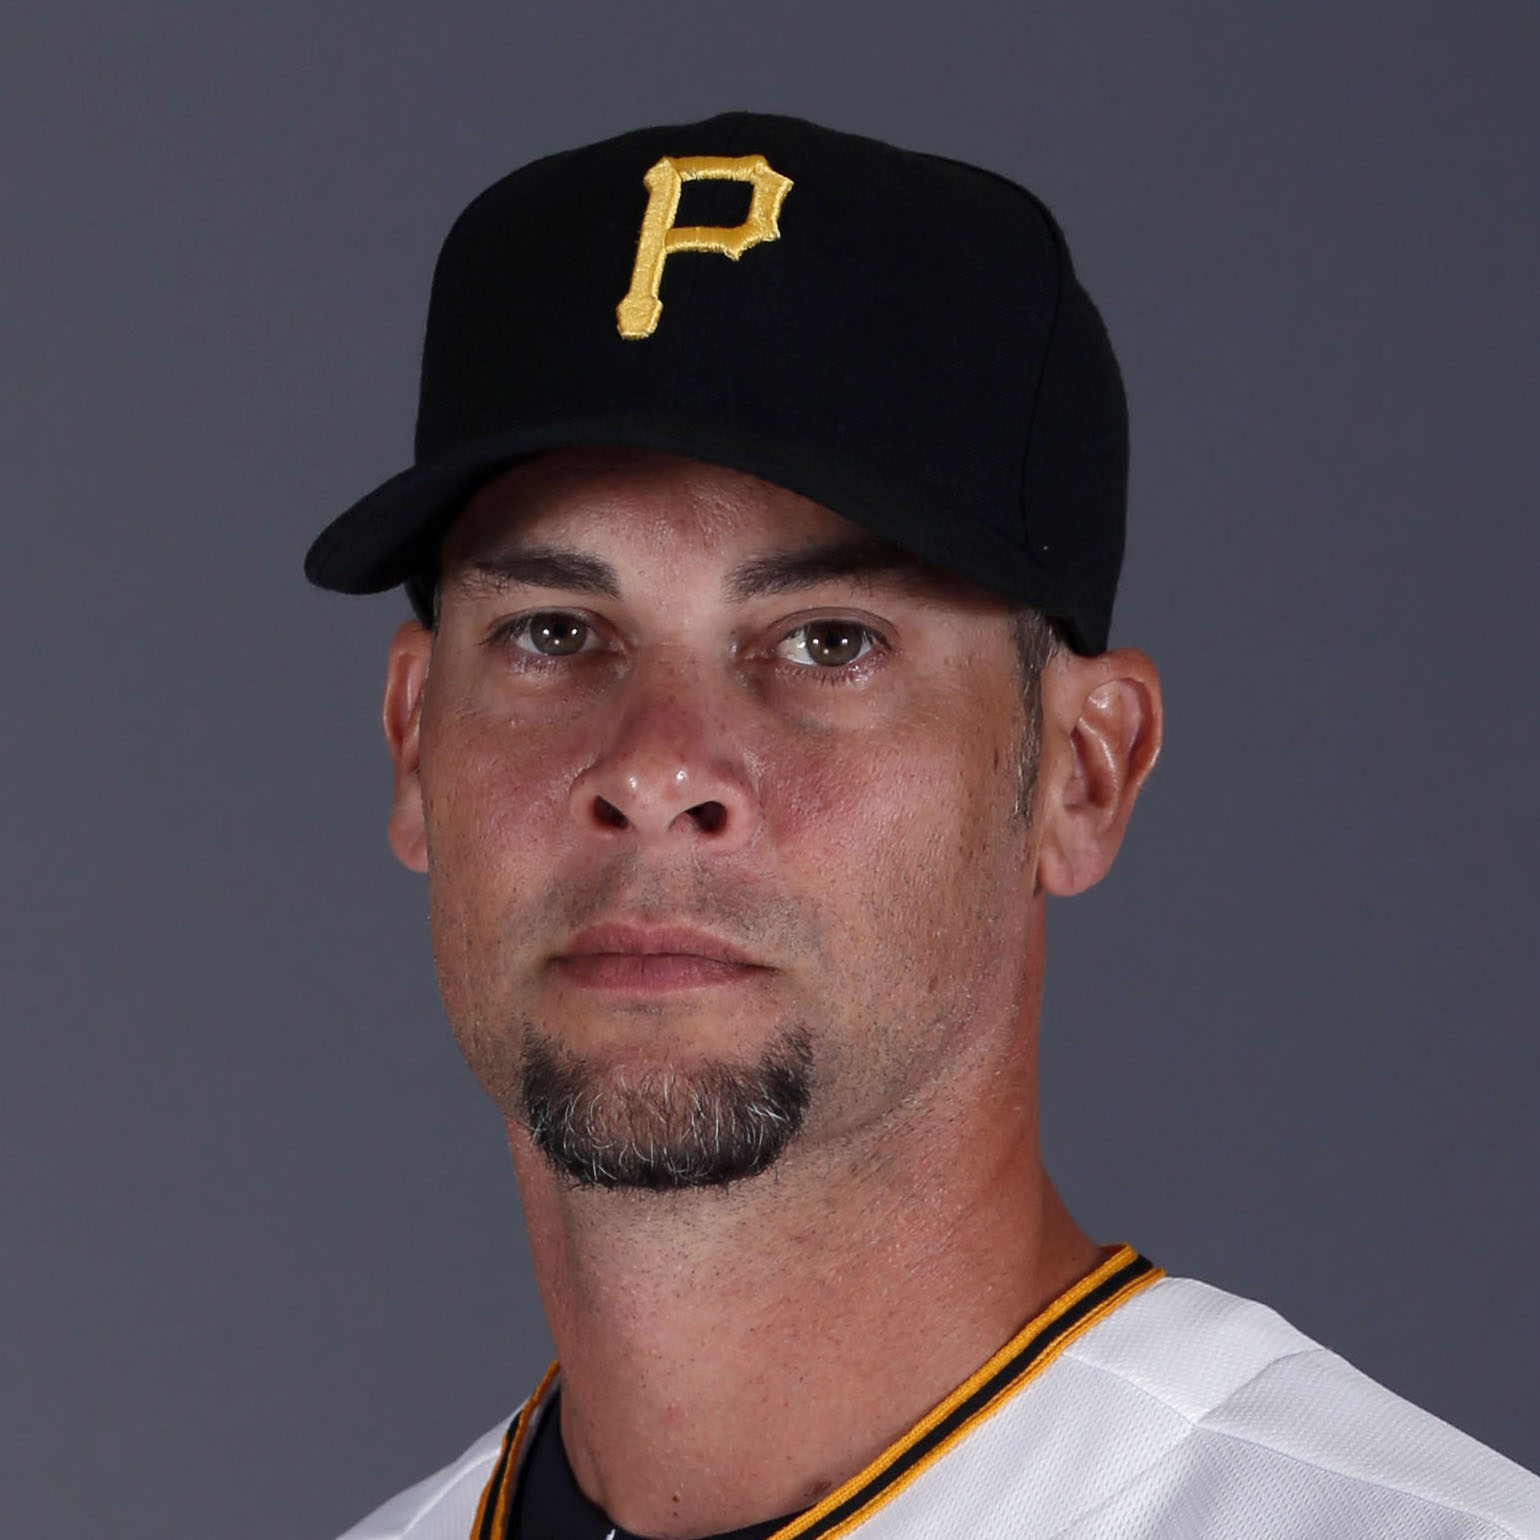 Ryan Vogelsong Headshot